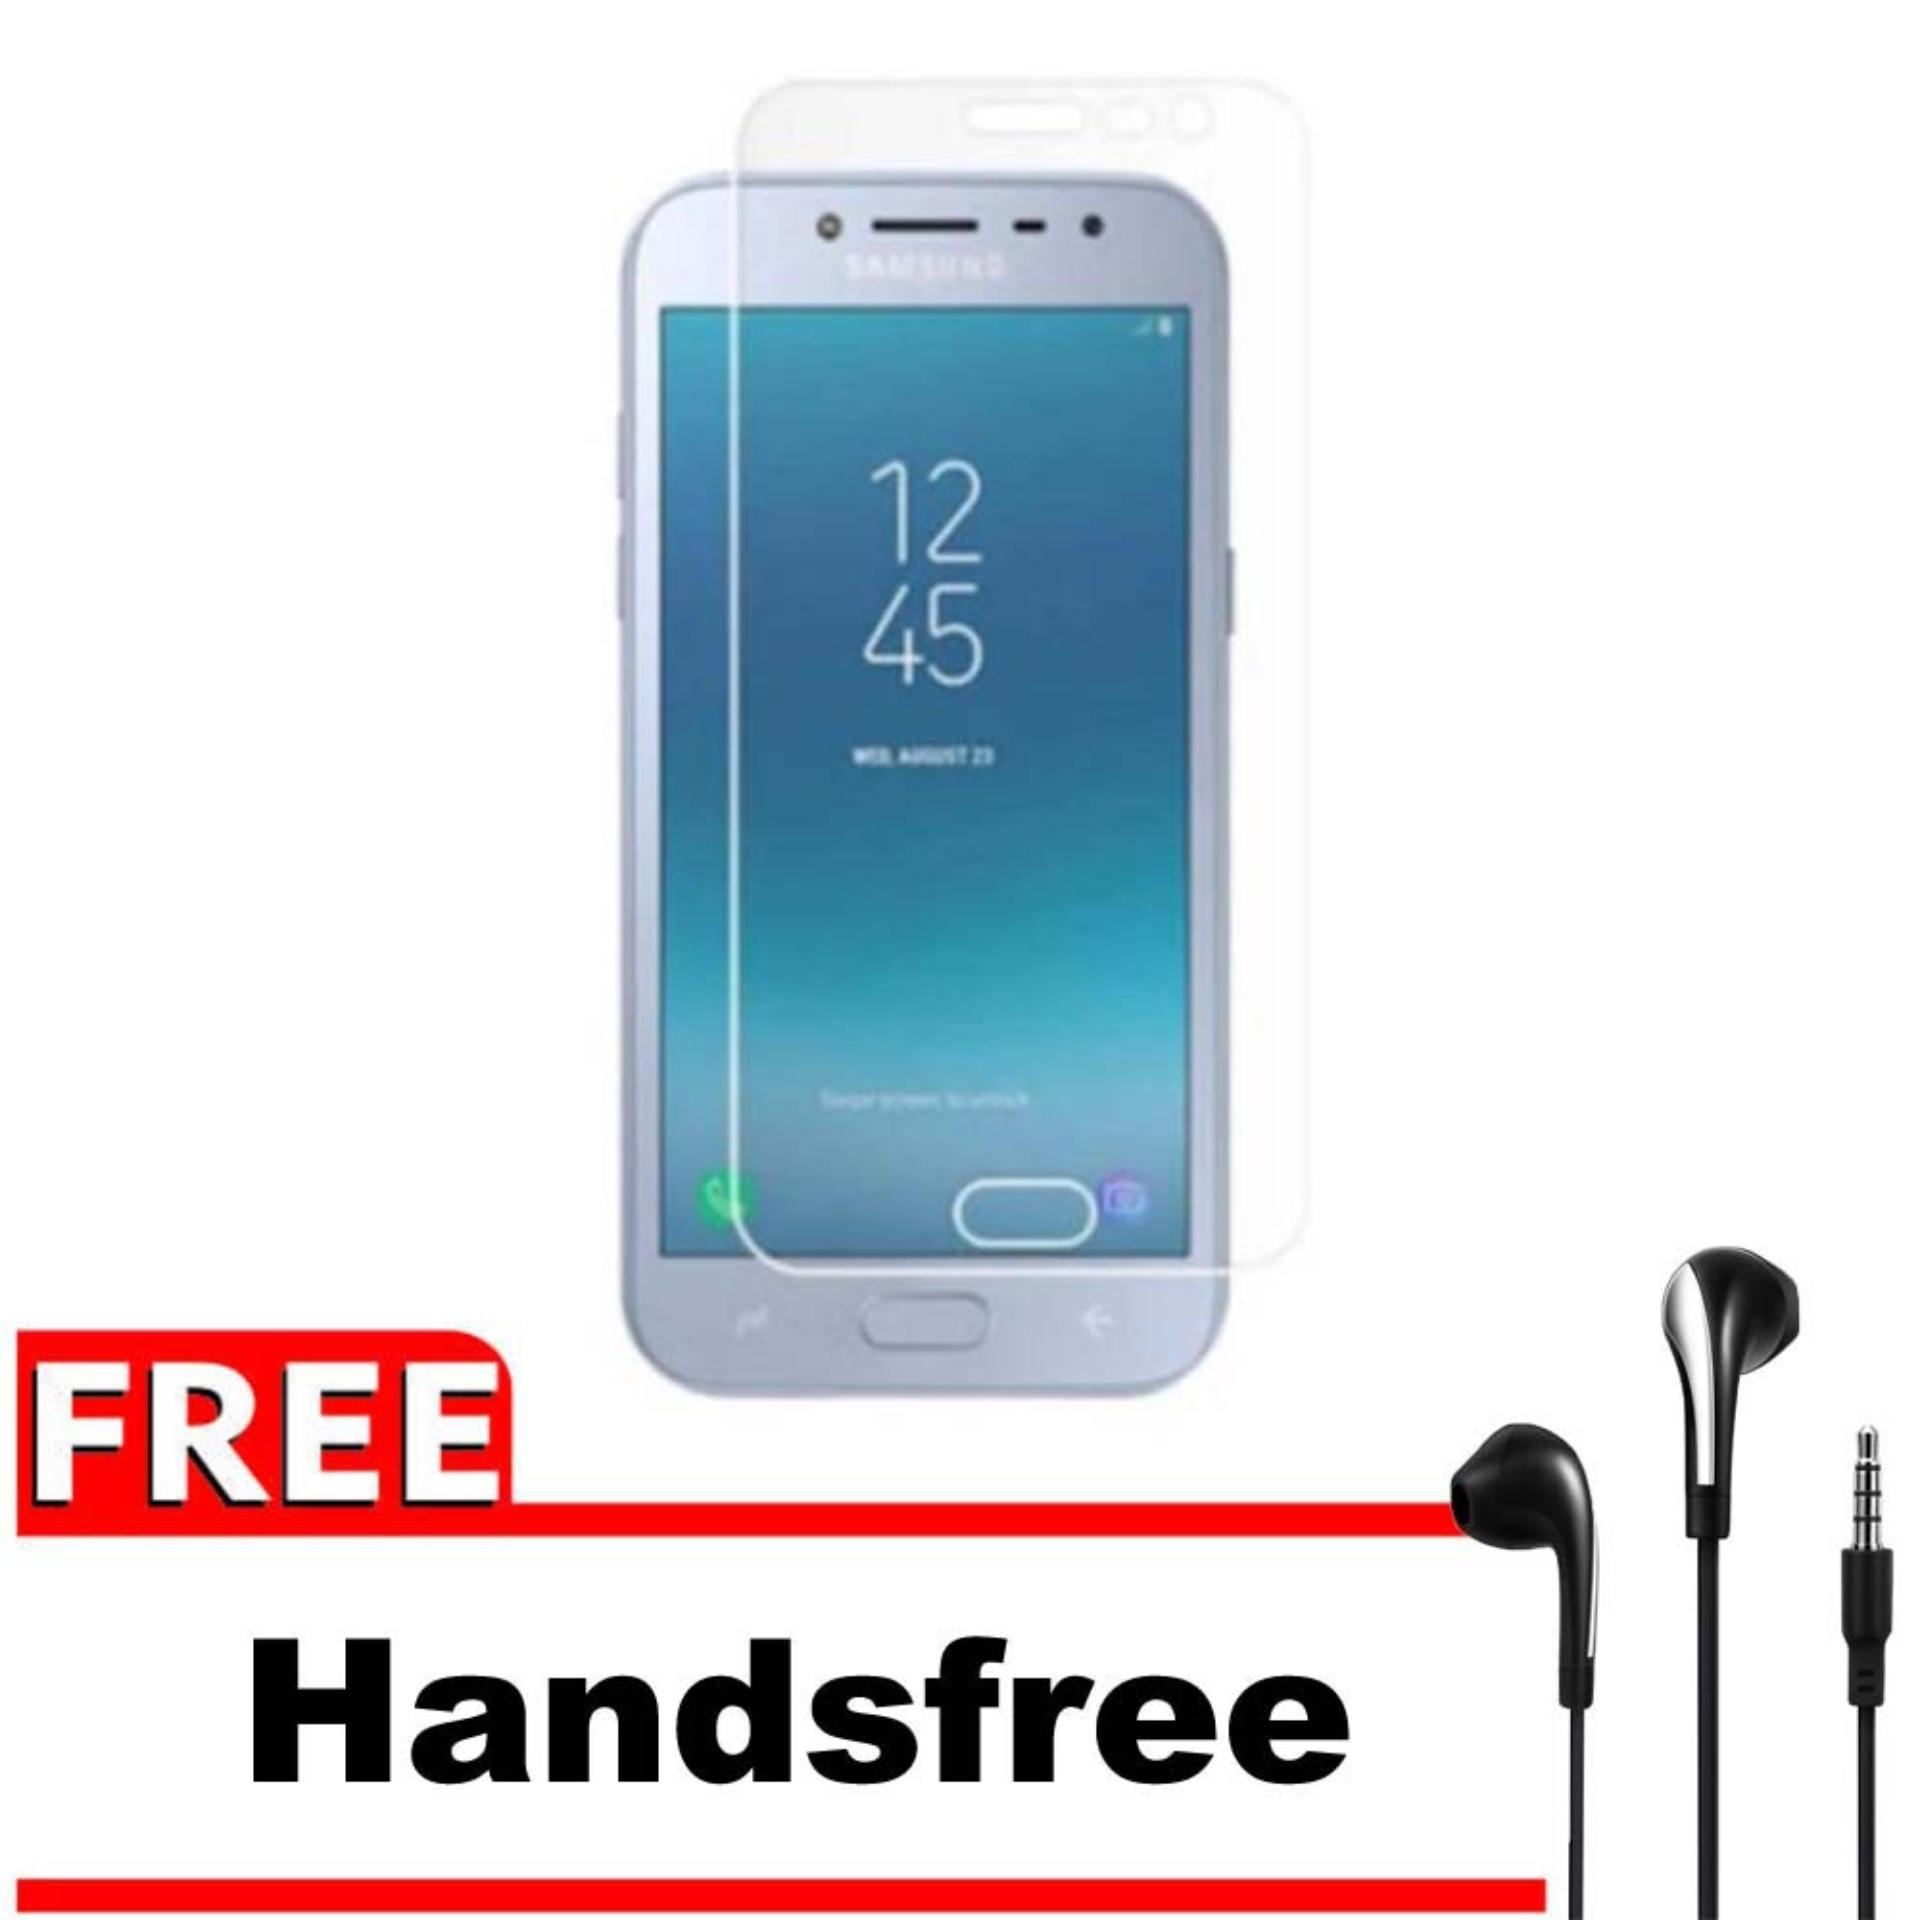 Vn Samsung Galaxy J2 Pro (2018) / Grand Prime Pro / 4G LTE / Duos Tempered Glass 9H Screen Protector 0.32mm + Gratis Free Handsfree Earphone Headset Universal - Bening Transparan